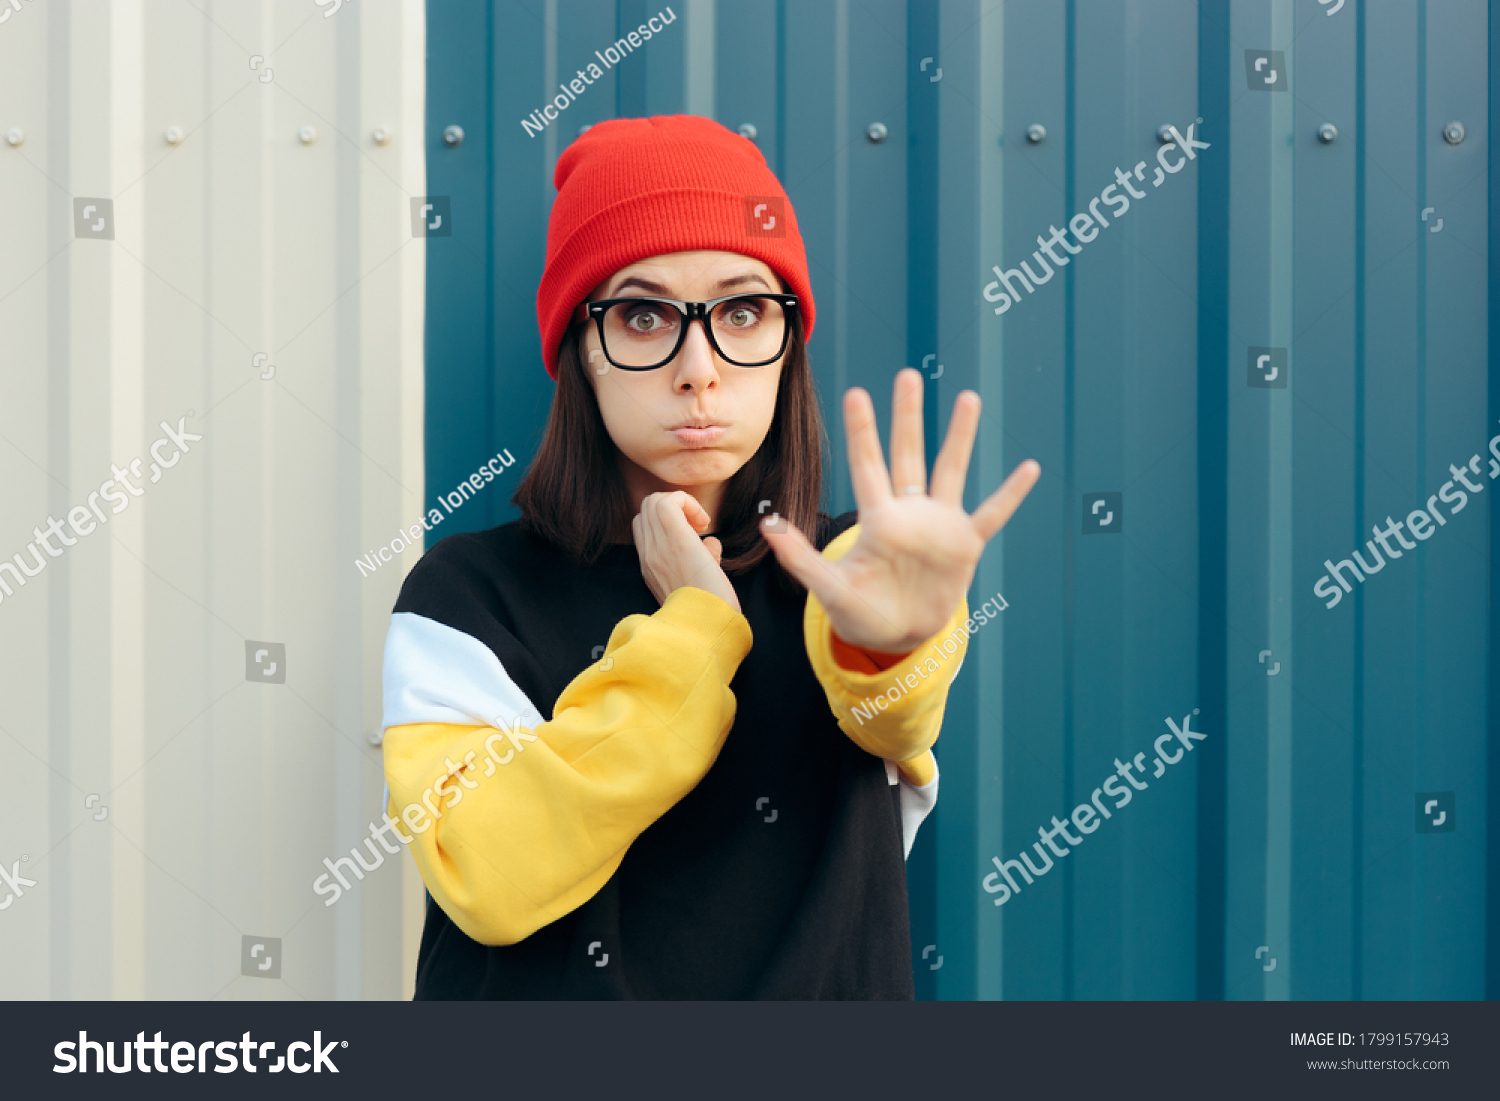 Unhappy Young Woman Making Stop Gesture with Hand. Assertive girl expressing disapproval and rejection  #1799157943